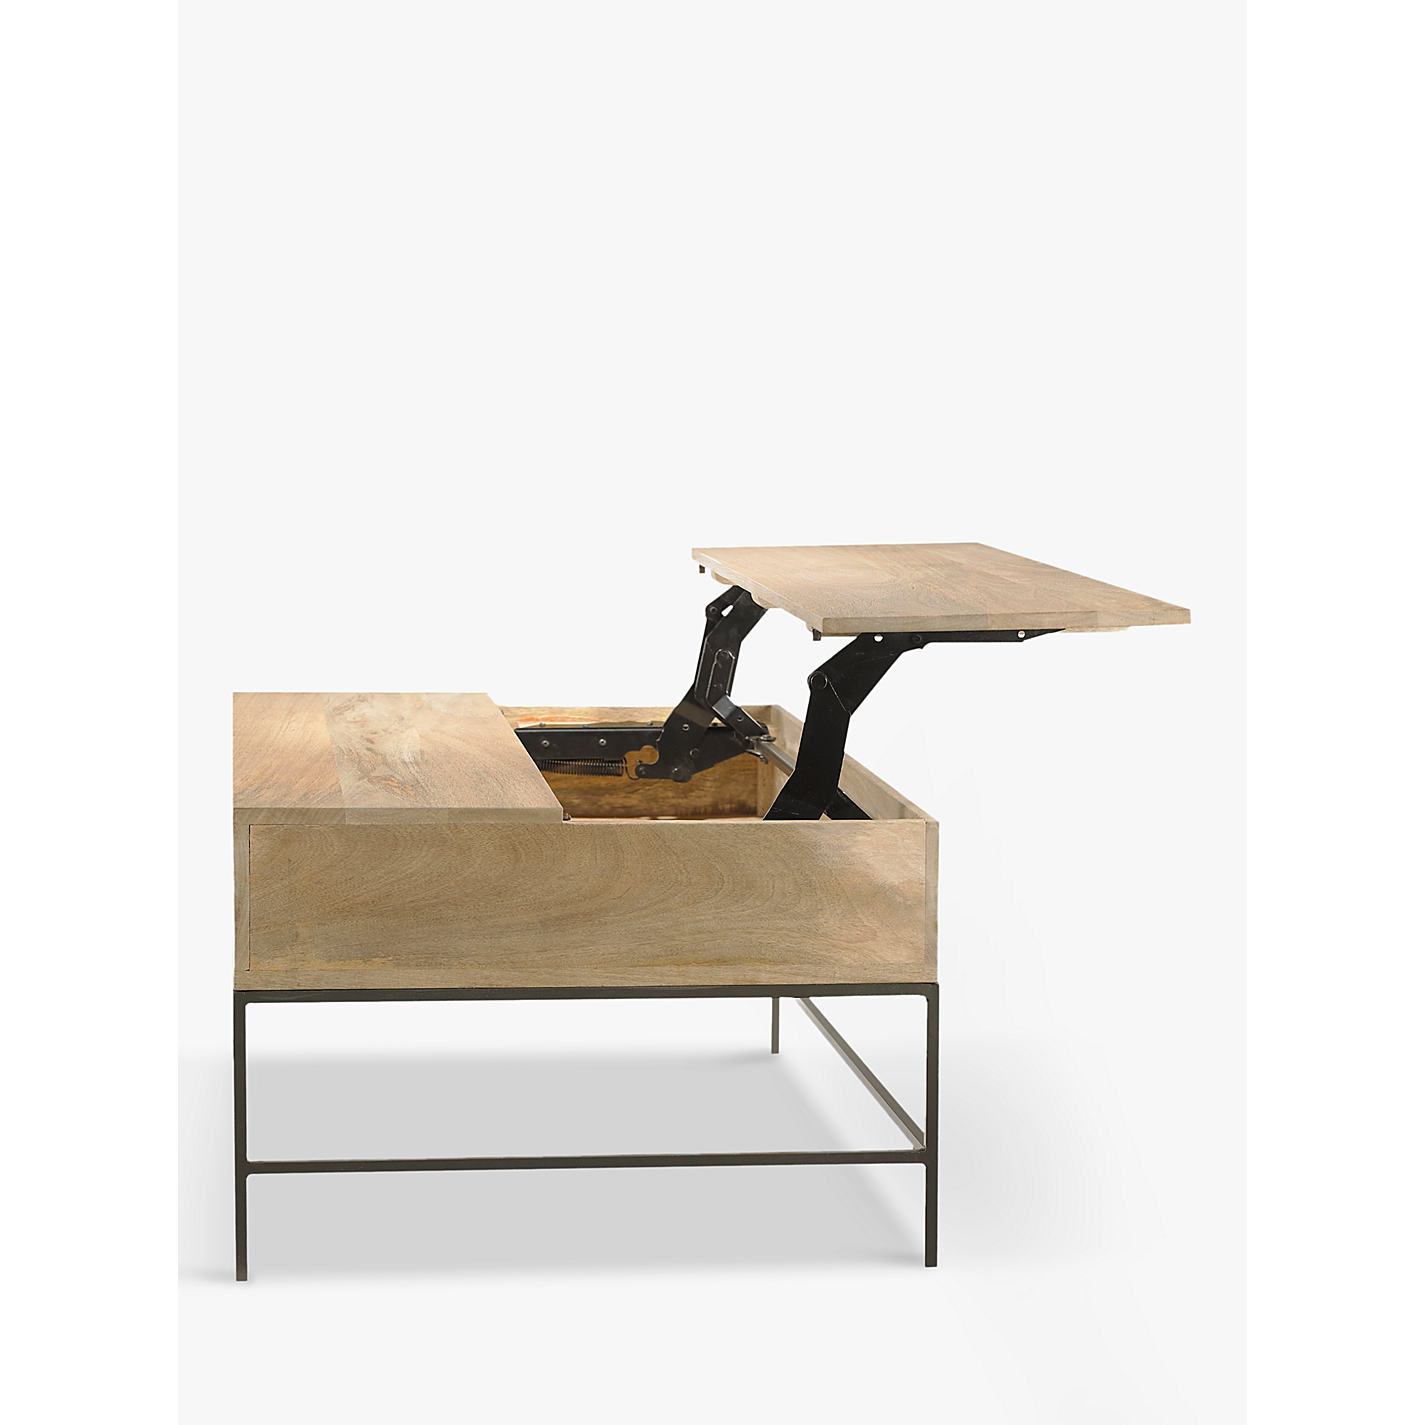 Buy west elm industrial storage coffee table john lewis buy west elm industrial storage coffee table online at johnlewis geotapseo Choice Image